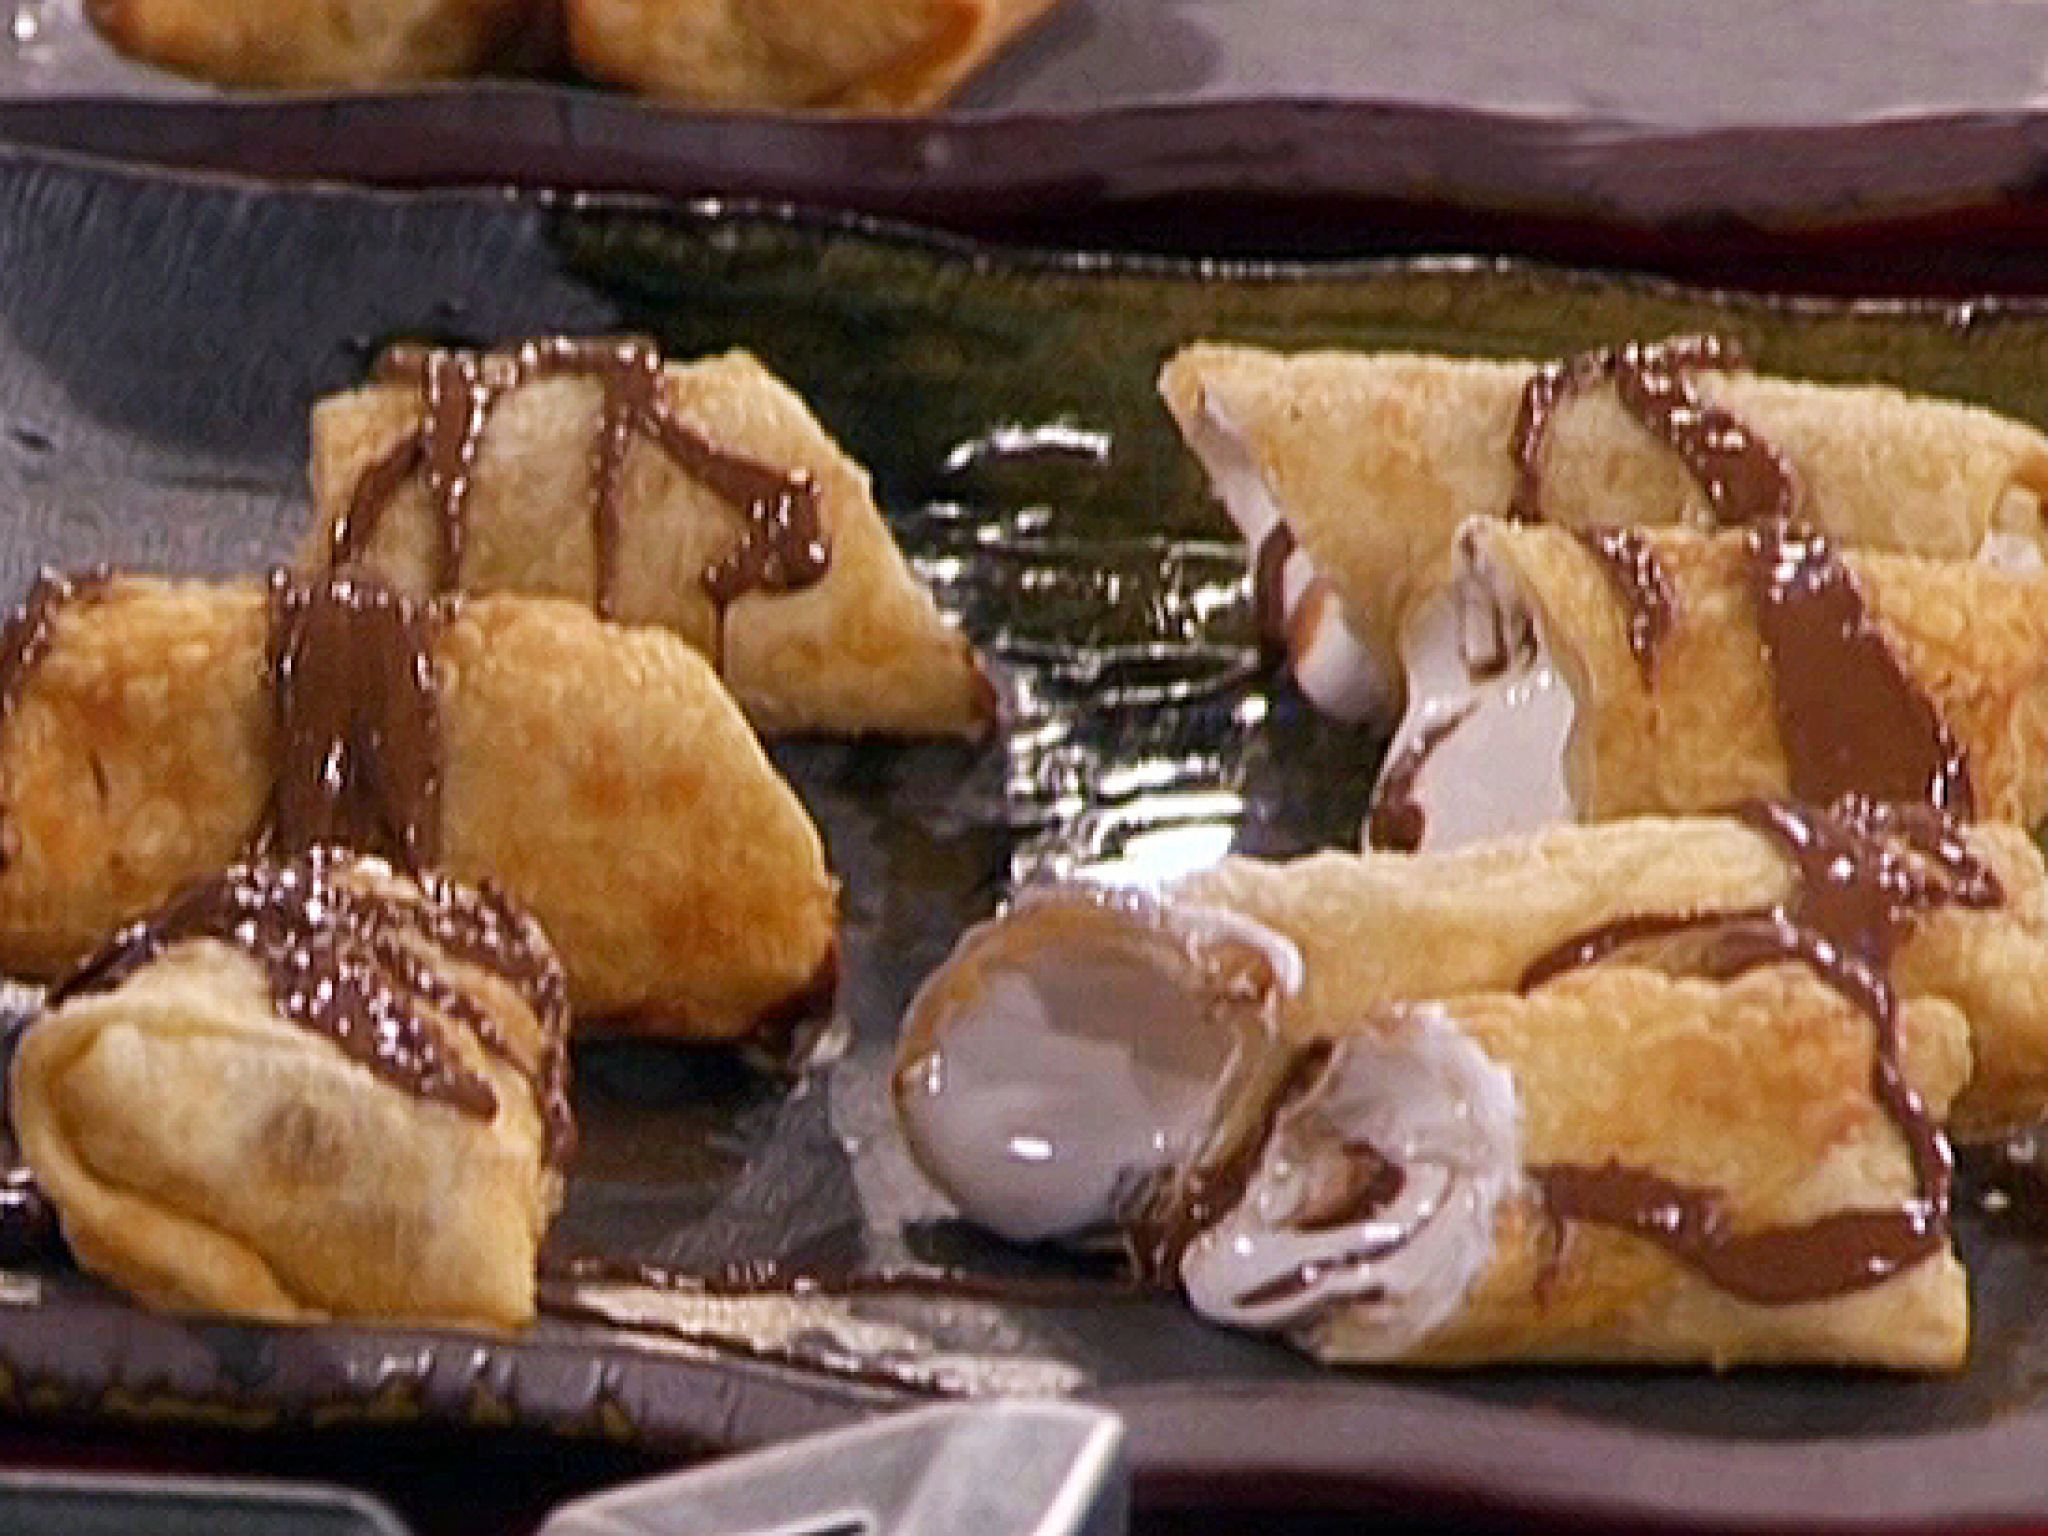 Smore eggroll recipe guy fieri food and recipes cooking ideas smore eggroll recipe from guy fieri via food network forumfinder Image collections